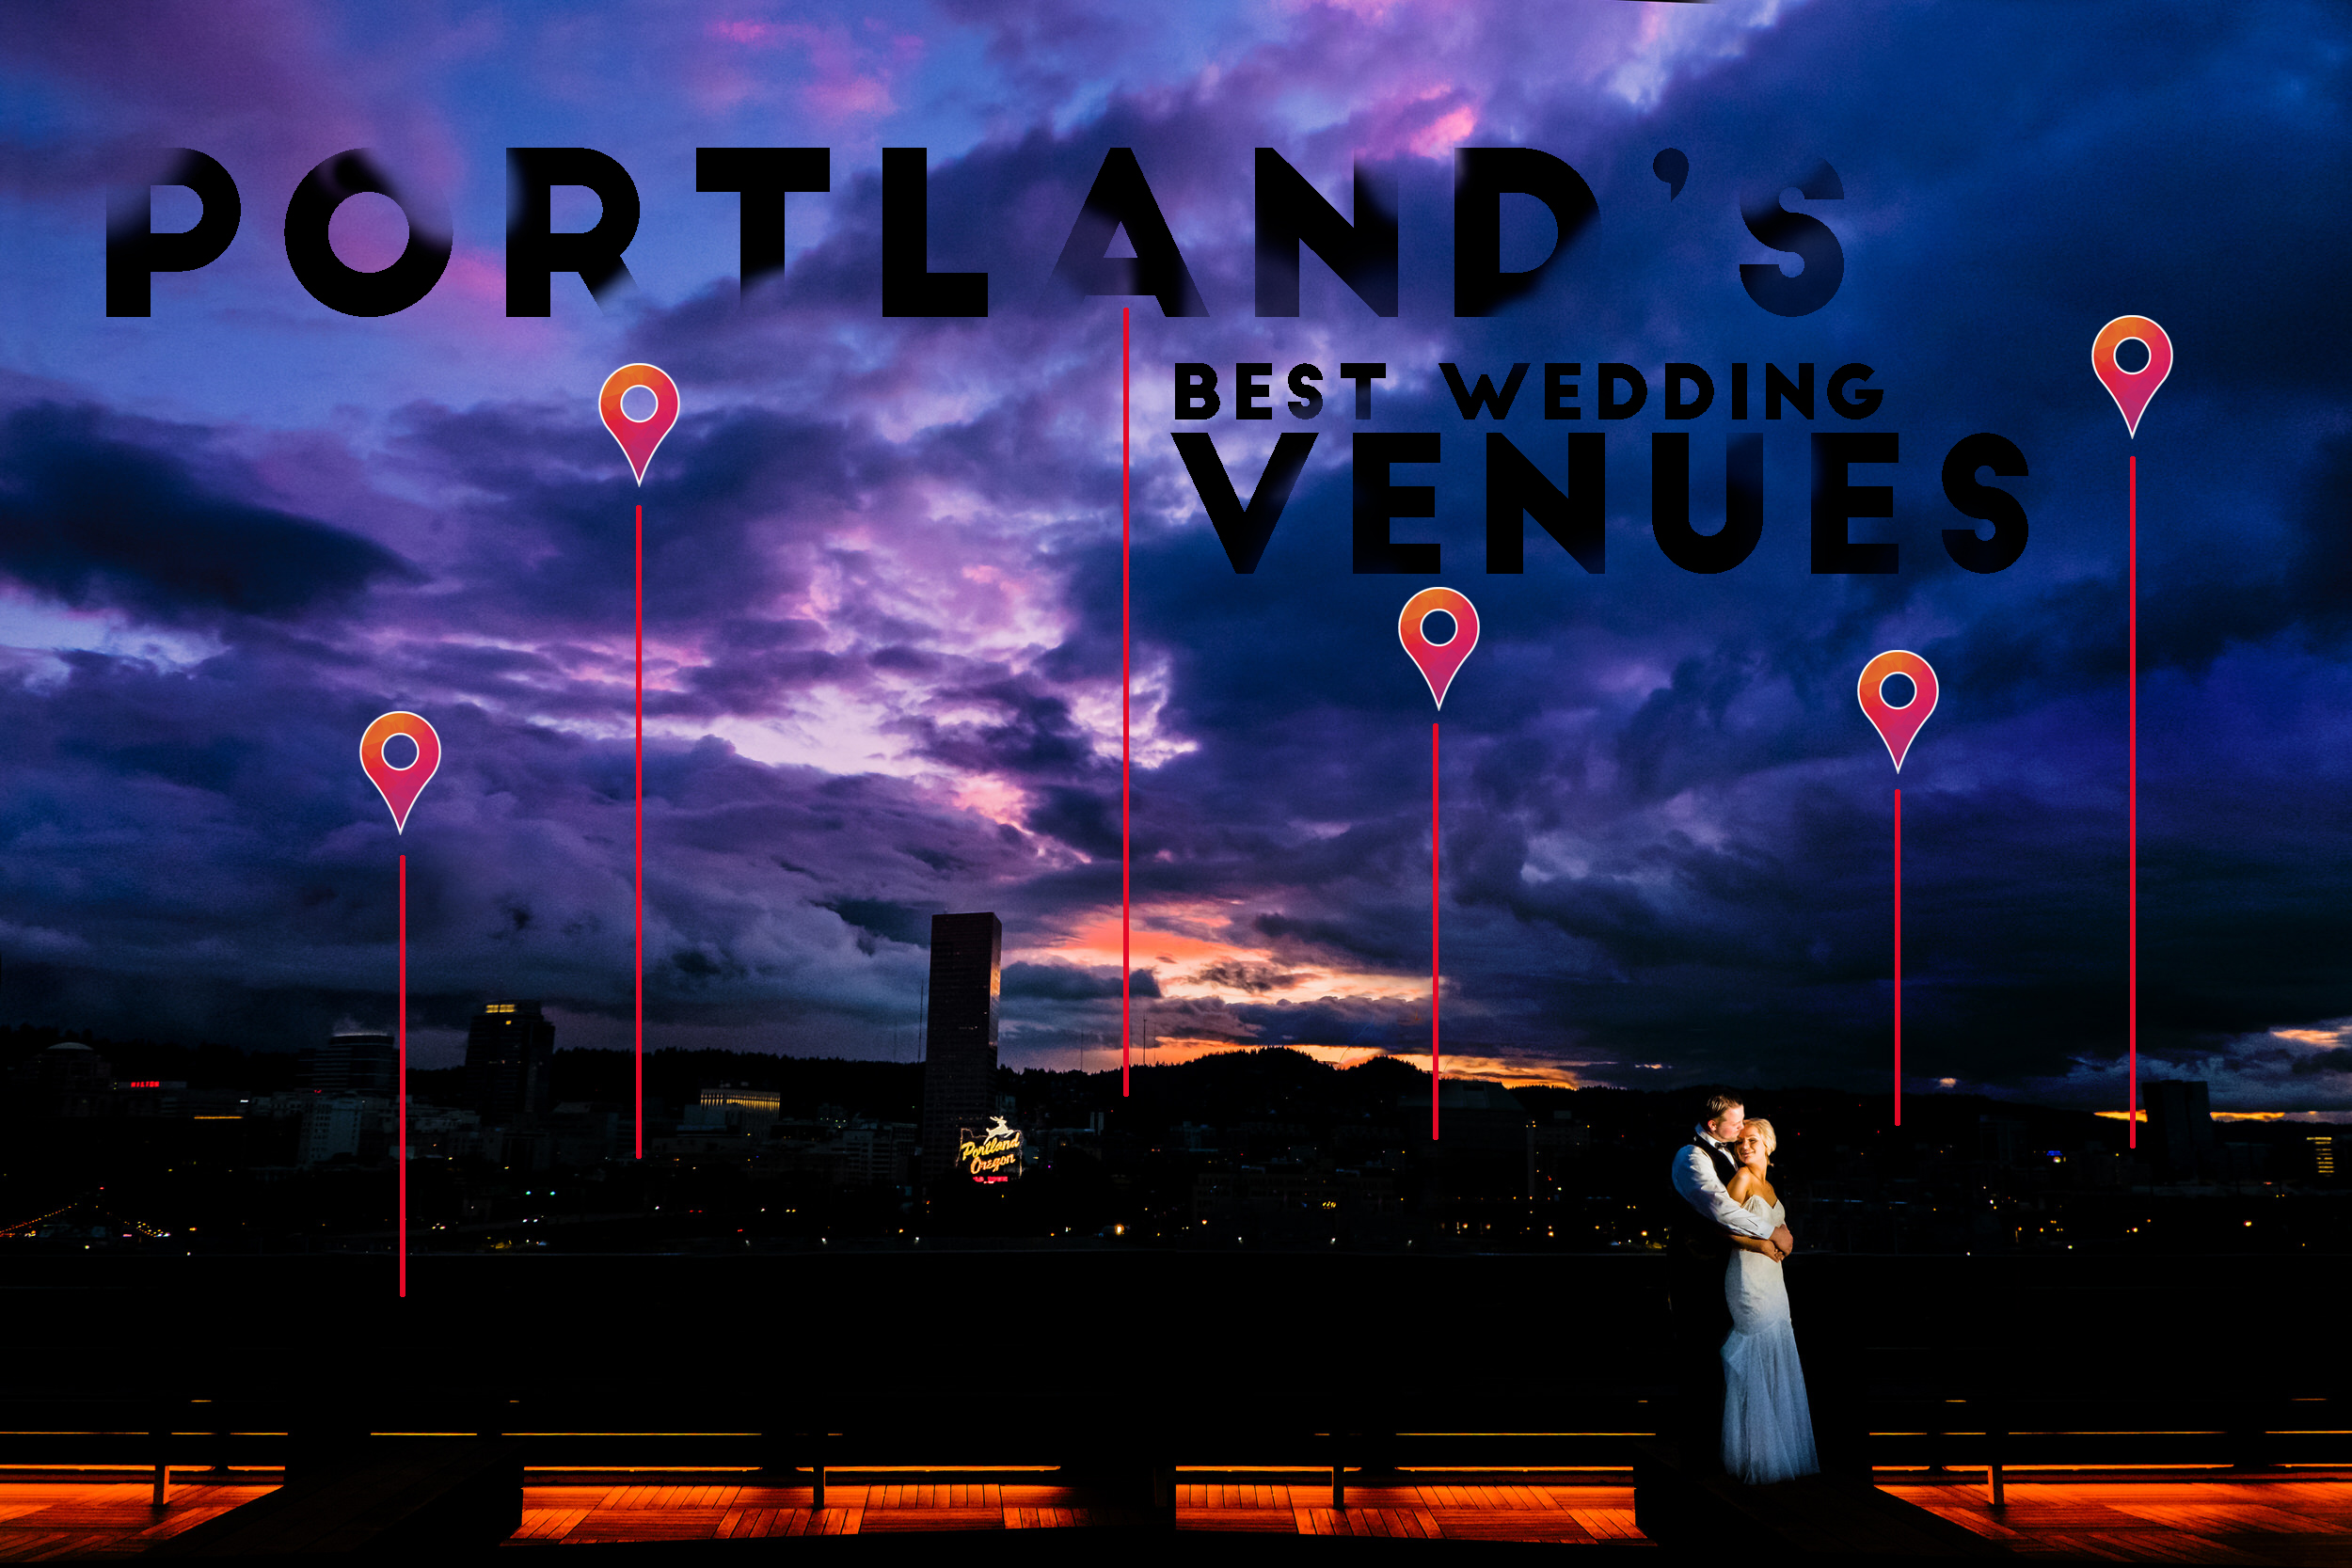 Portland's best wedding venues are teh best places in the Portland to get married